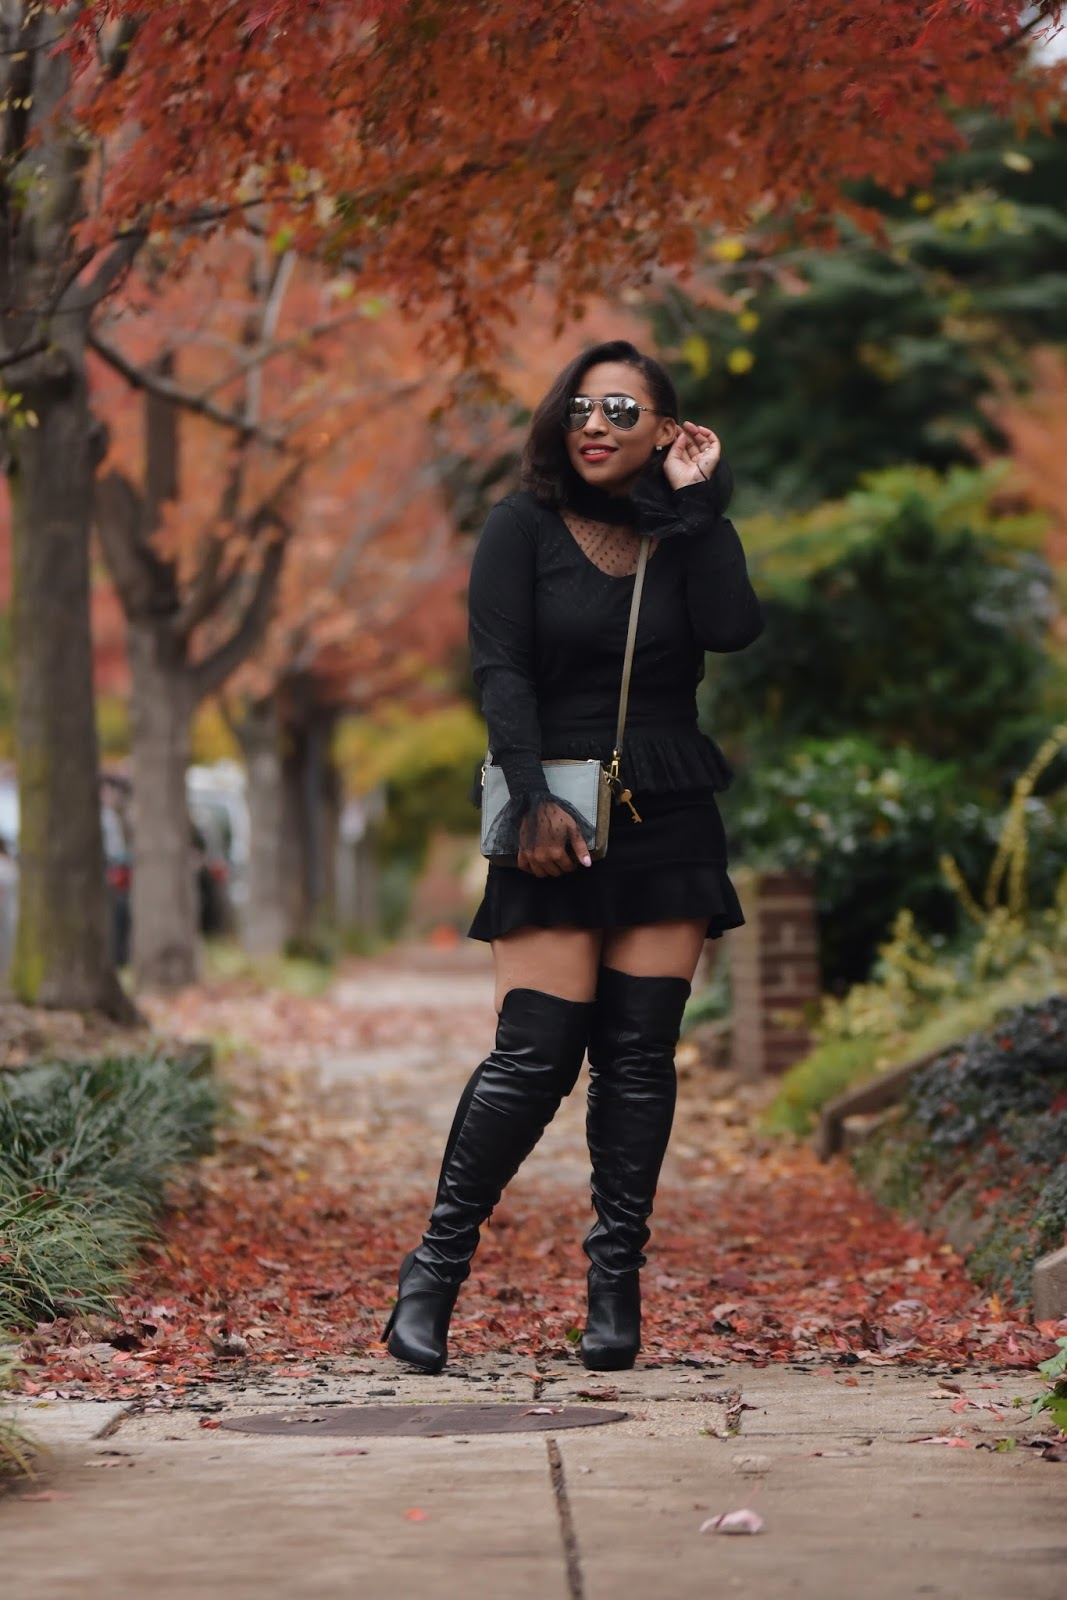 All black look, over the knee boots, otk boots, thankful, thanksgiving, rainbow shops, forever21, dominican blogger, latina blogger, fossil purses, fall foilage